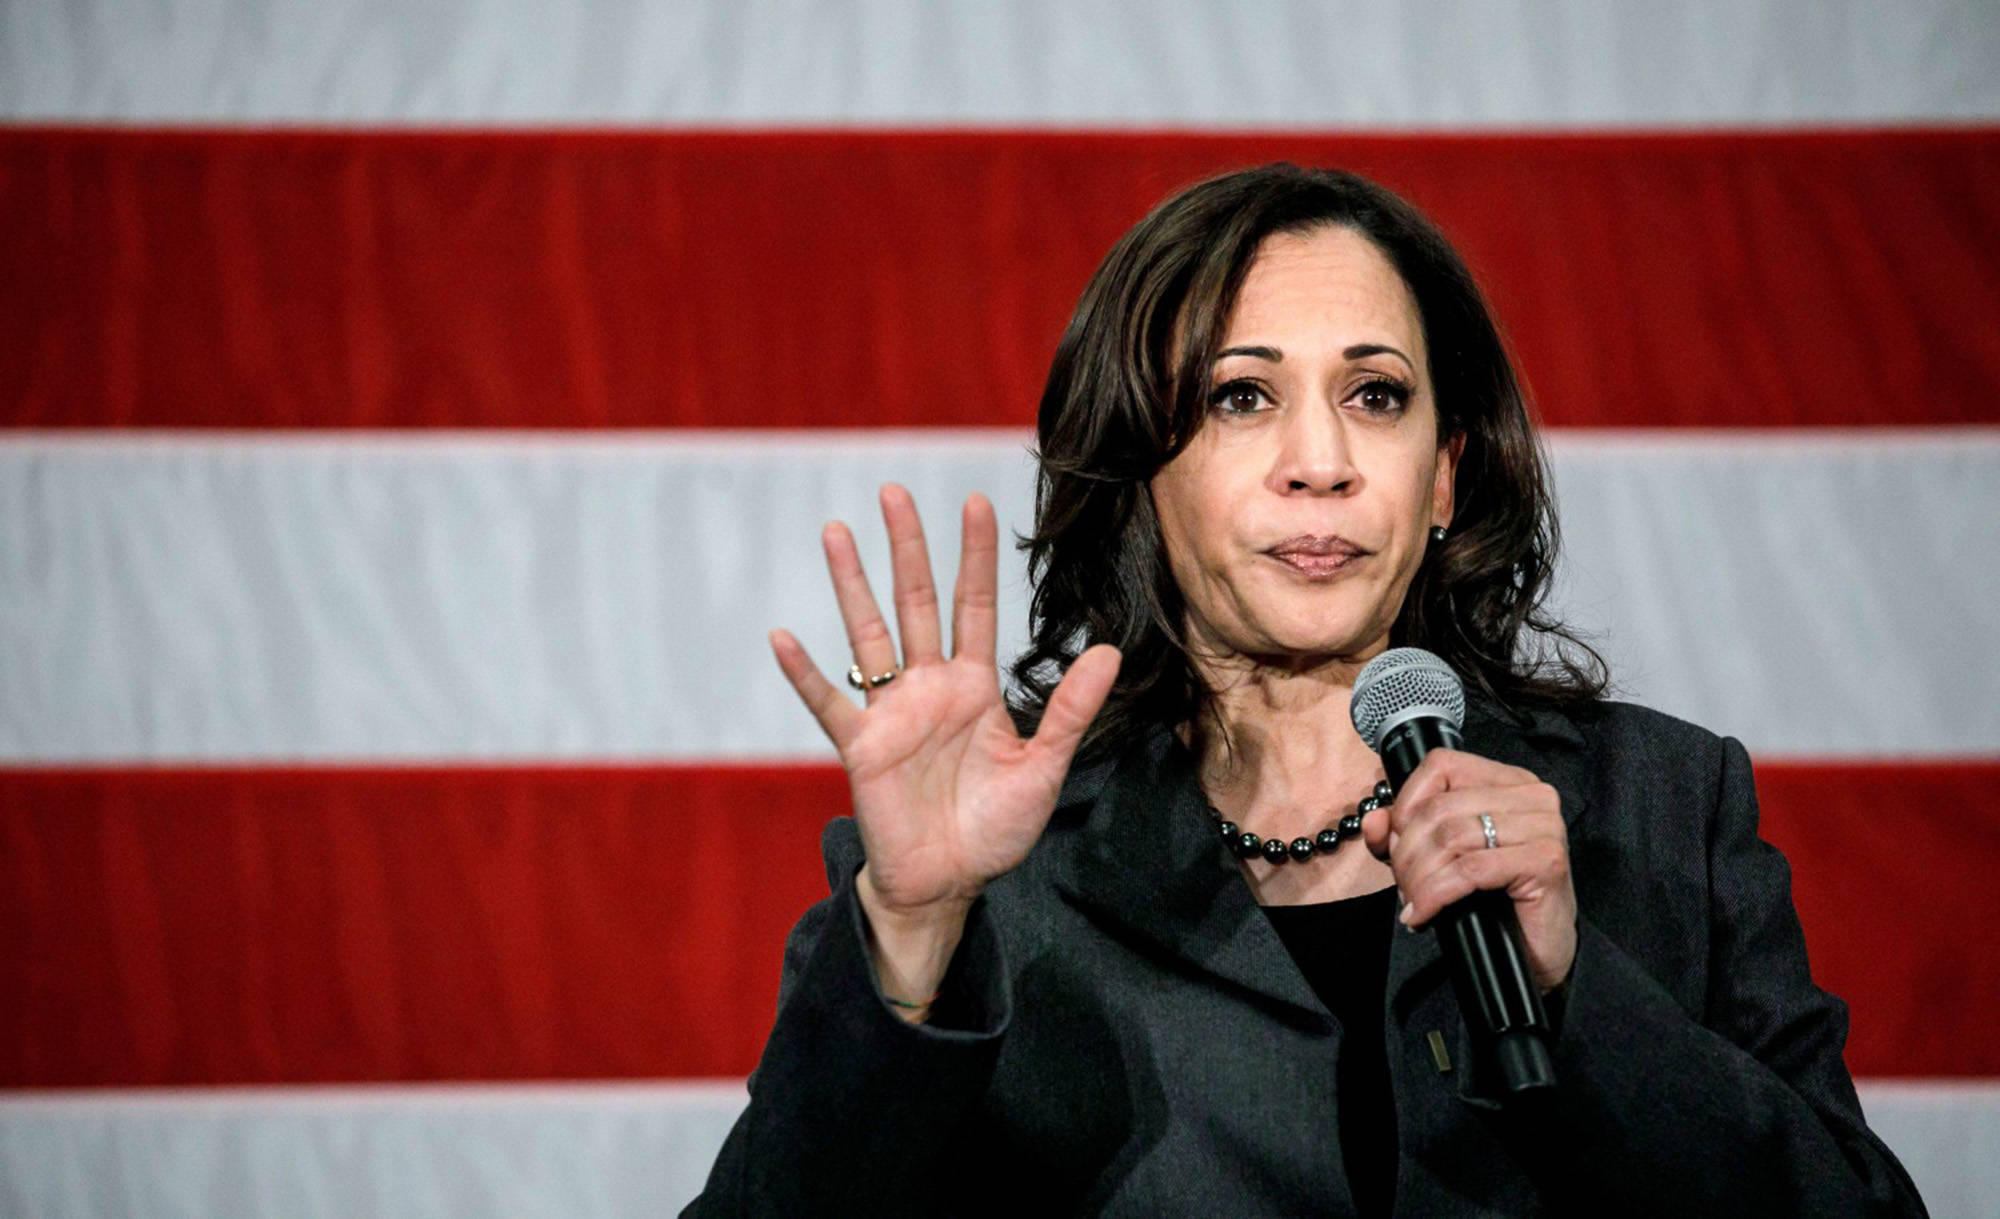 U.S. Sen. Kamala Harris speaks at a campaign rally at the FFA Enrichment Center in Ankeny, Iowa, on Feb. 23. (Marcus Yam/Los Angeles Times/TNS)